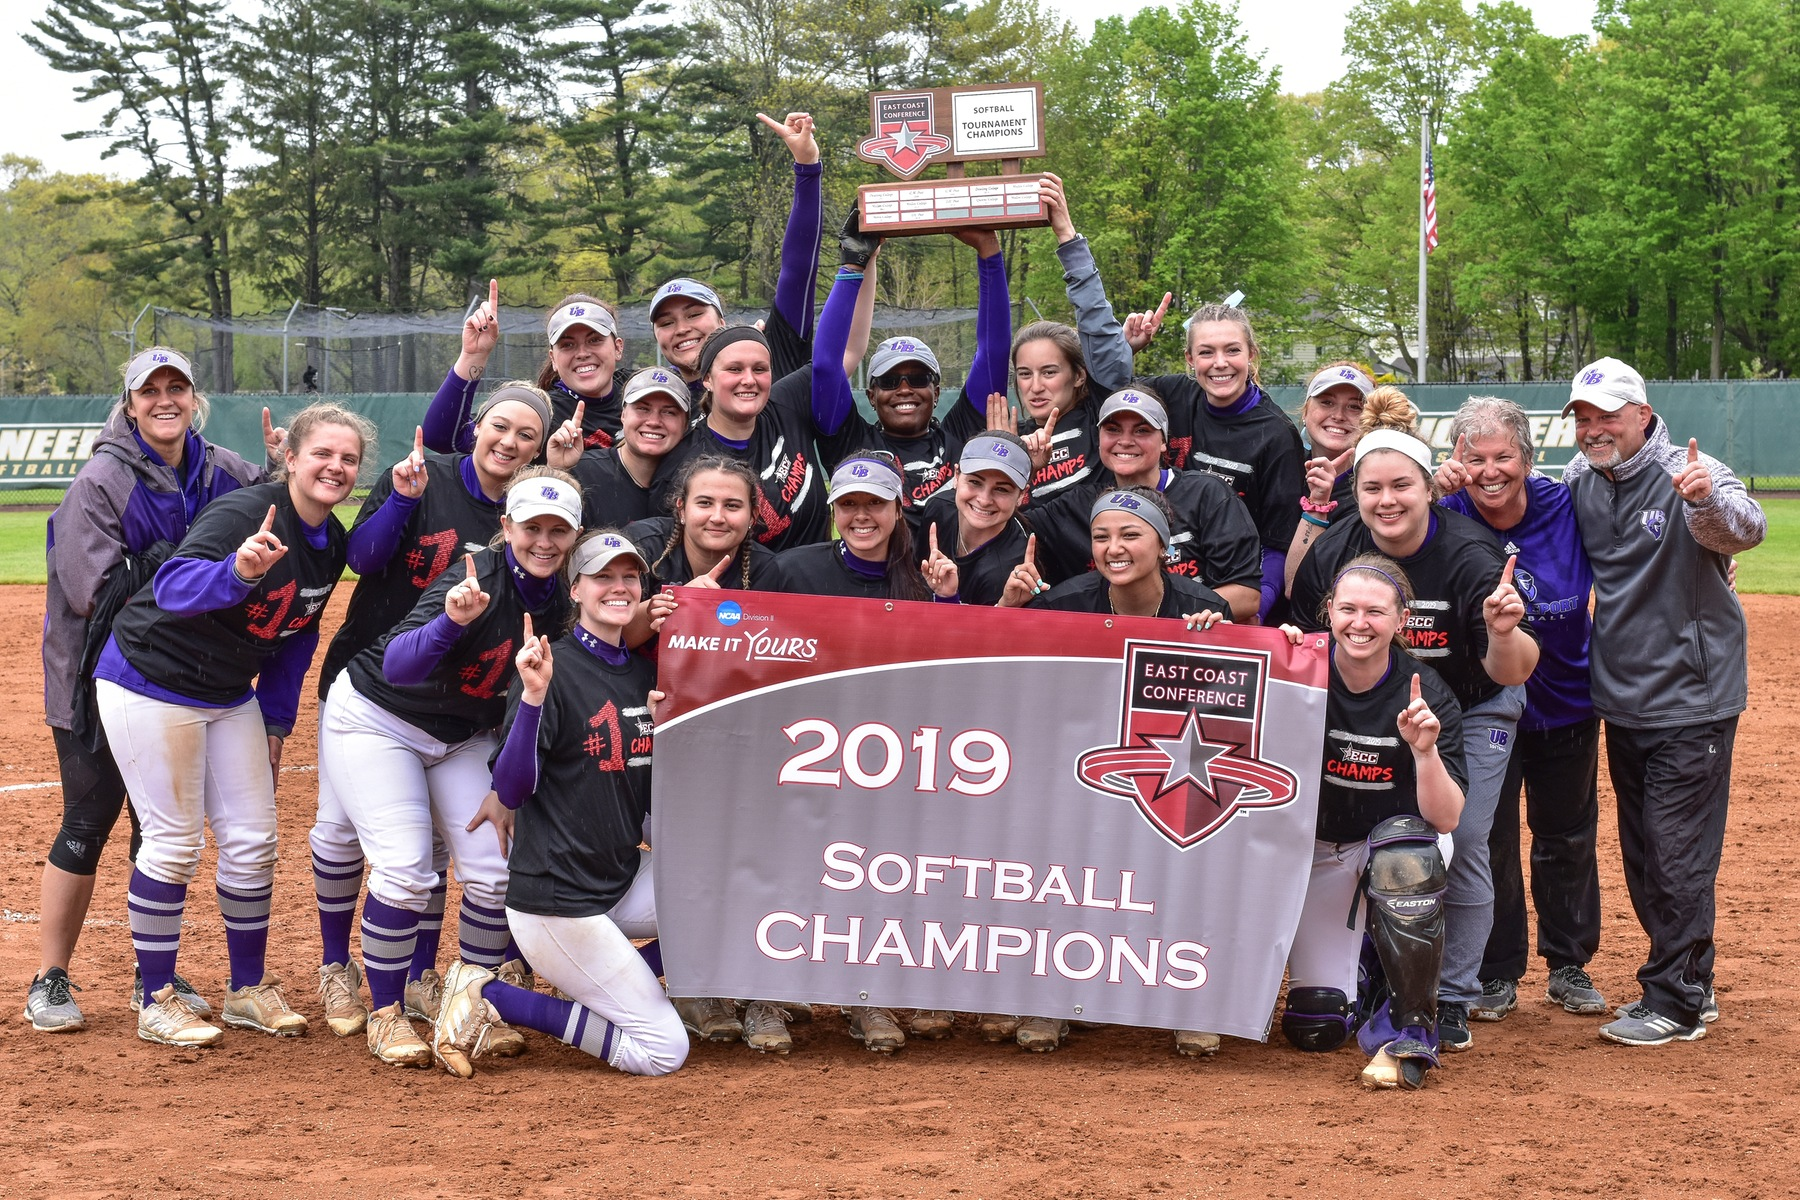 History!!! Purple Knights Earn First-Ever ECC Softball Crown With 3-0 Win Over Top-Seed LIU Post